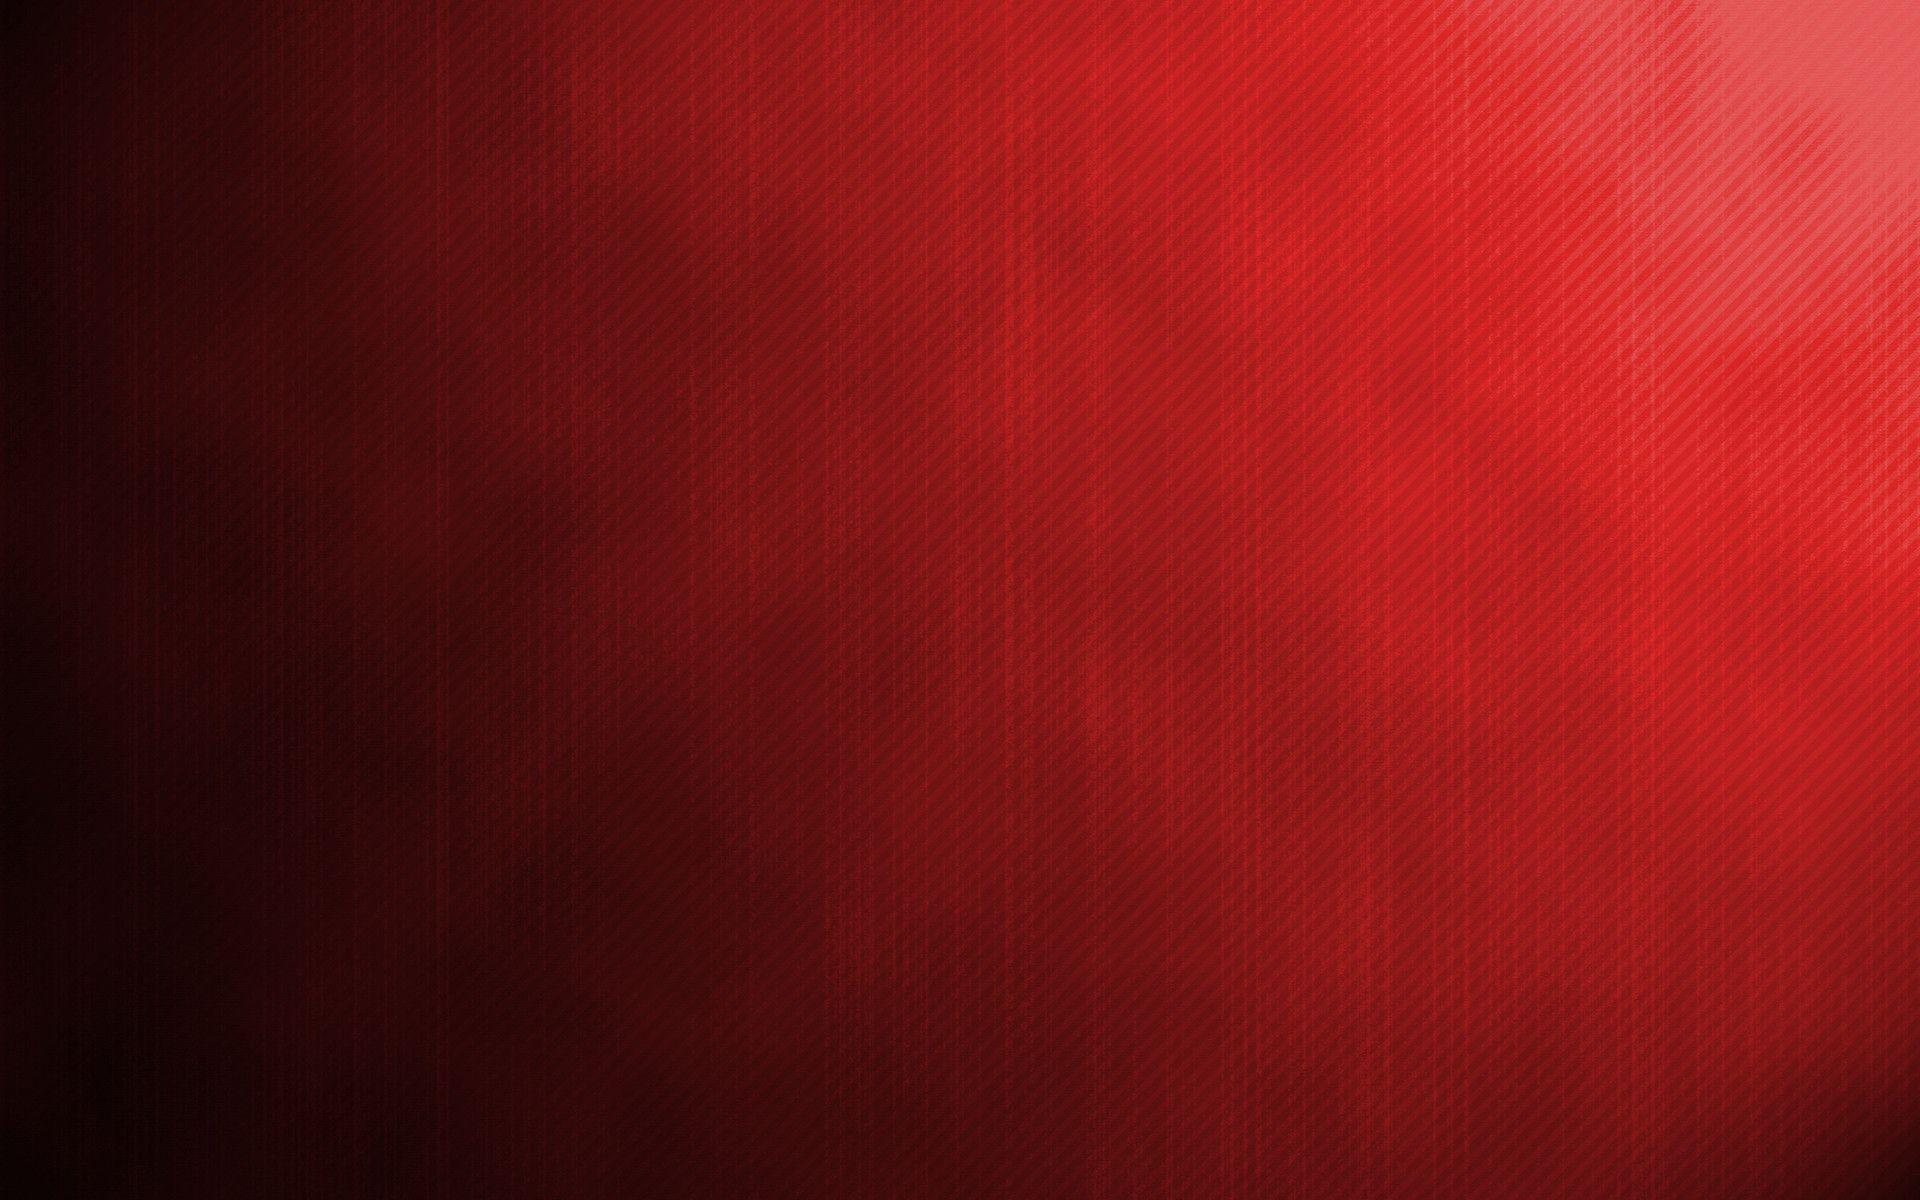 red and black wallpapers 31 32214 backgrounds cLVj